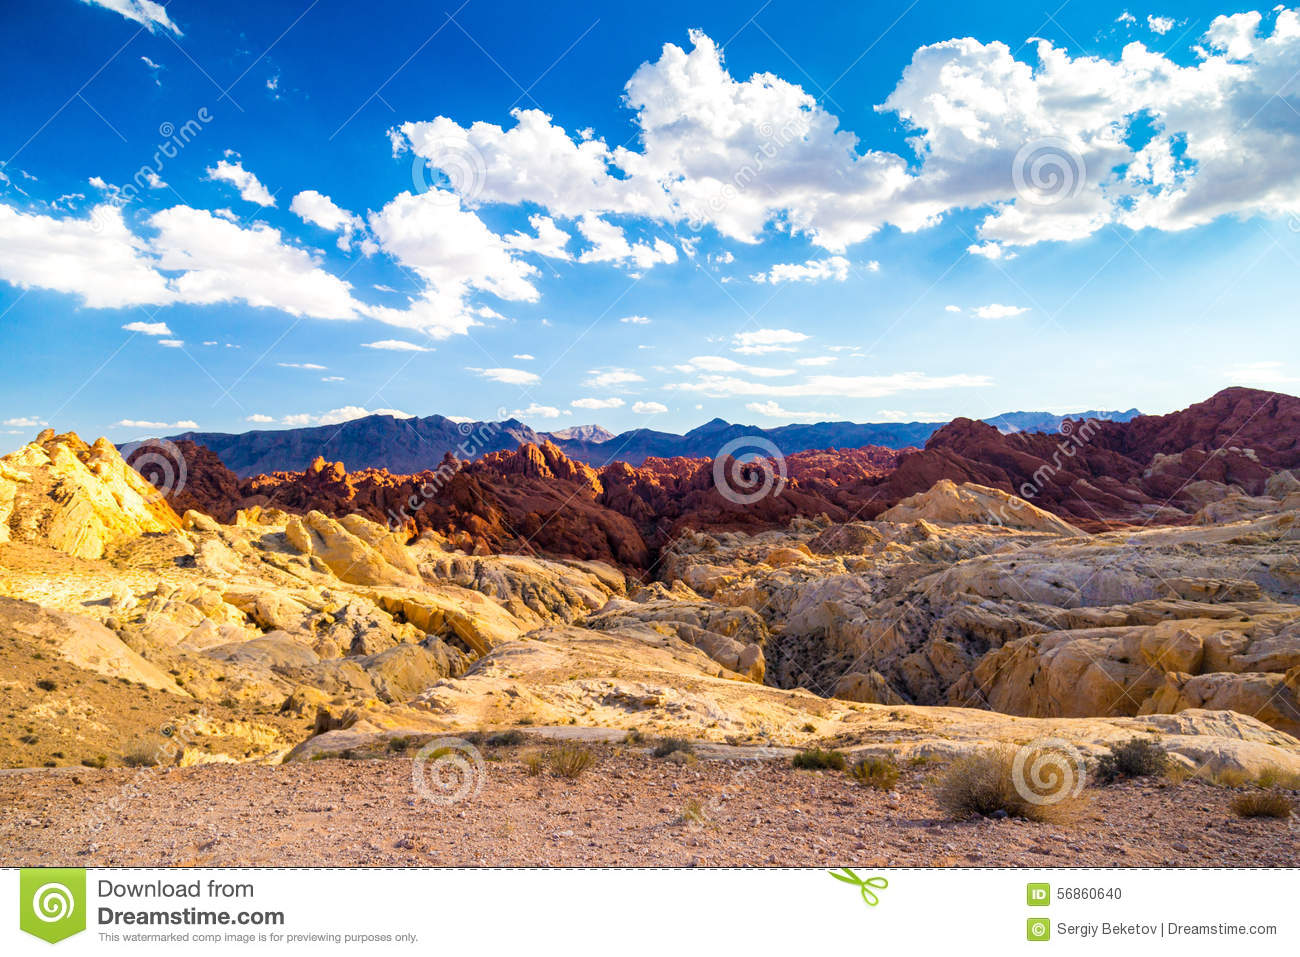 Red rocks amid blue sky in Valley of Fire State Park, Nevada